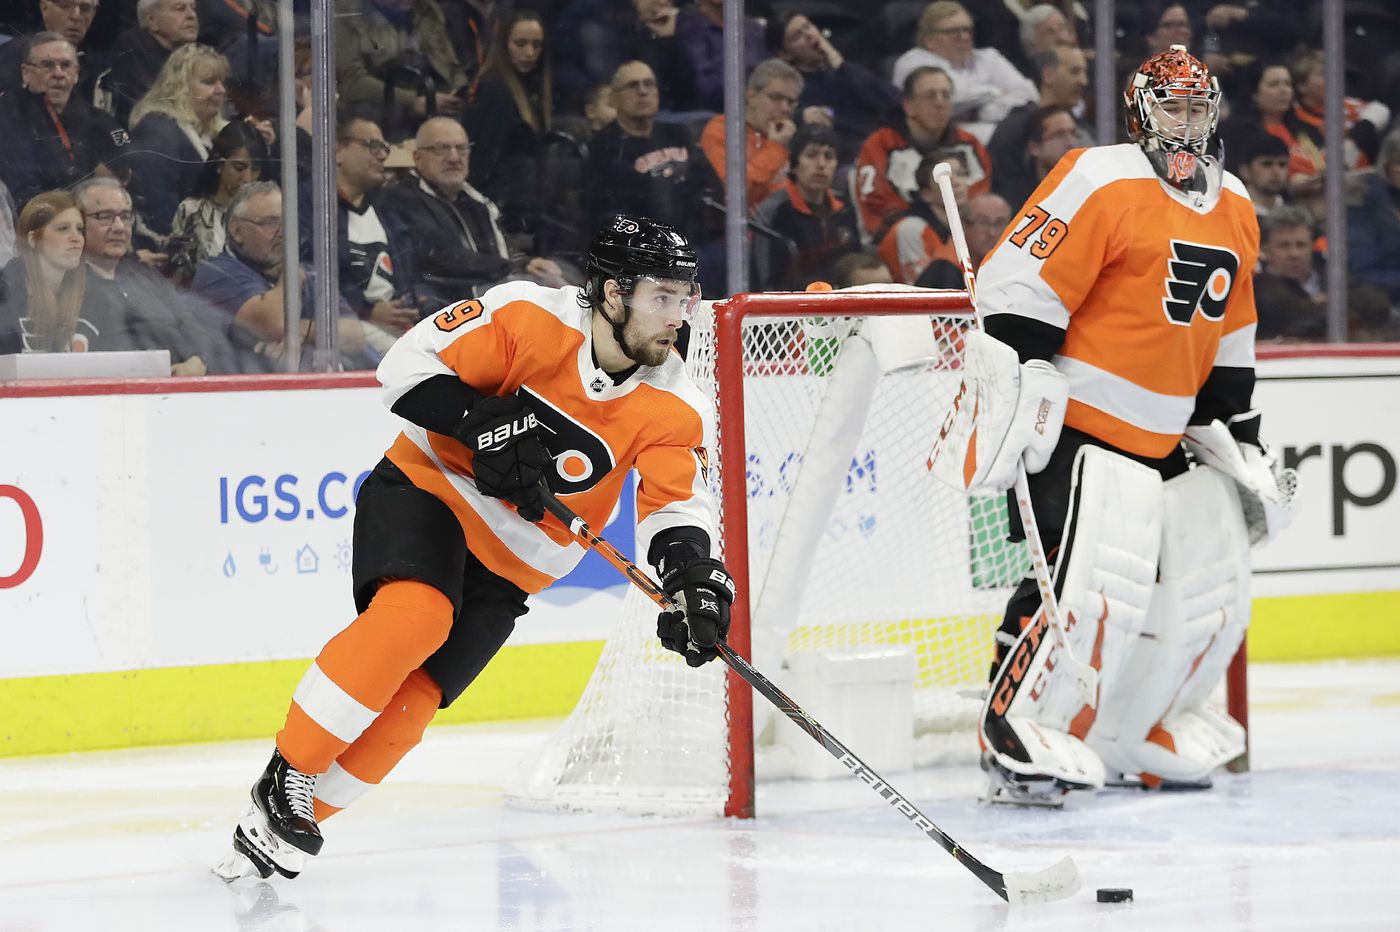 Flyers defenseman Ivan Provorov: 'It feels 'a little more real that hockey is almost back'